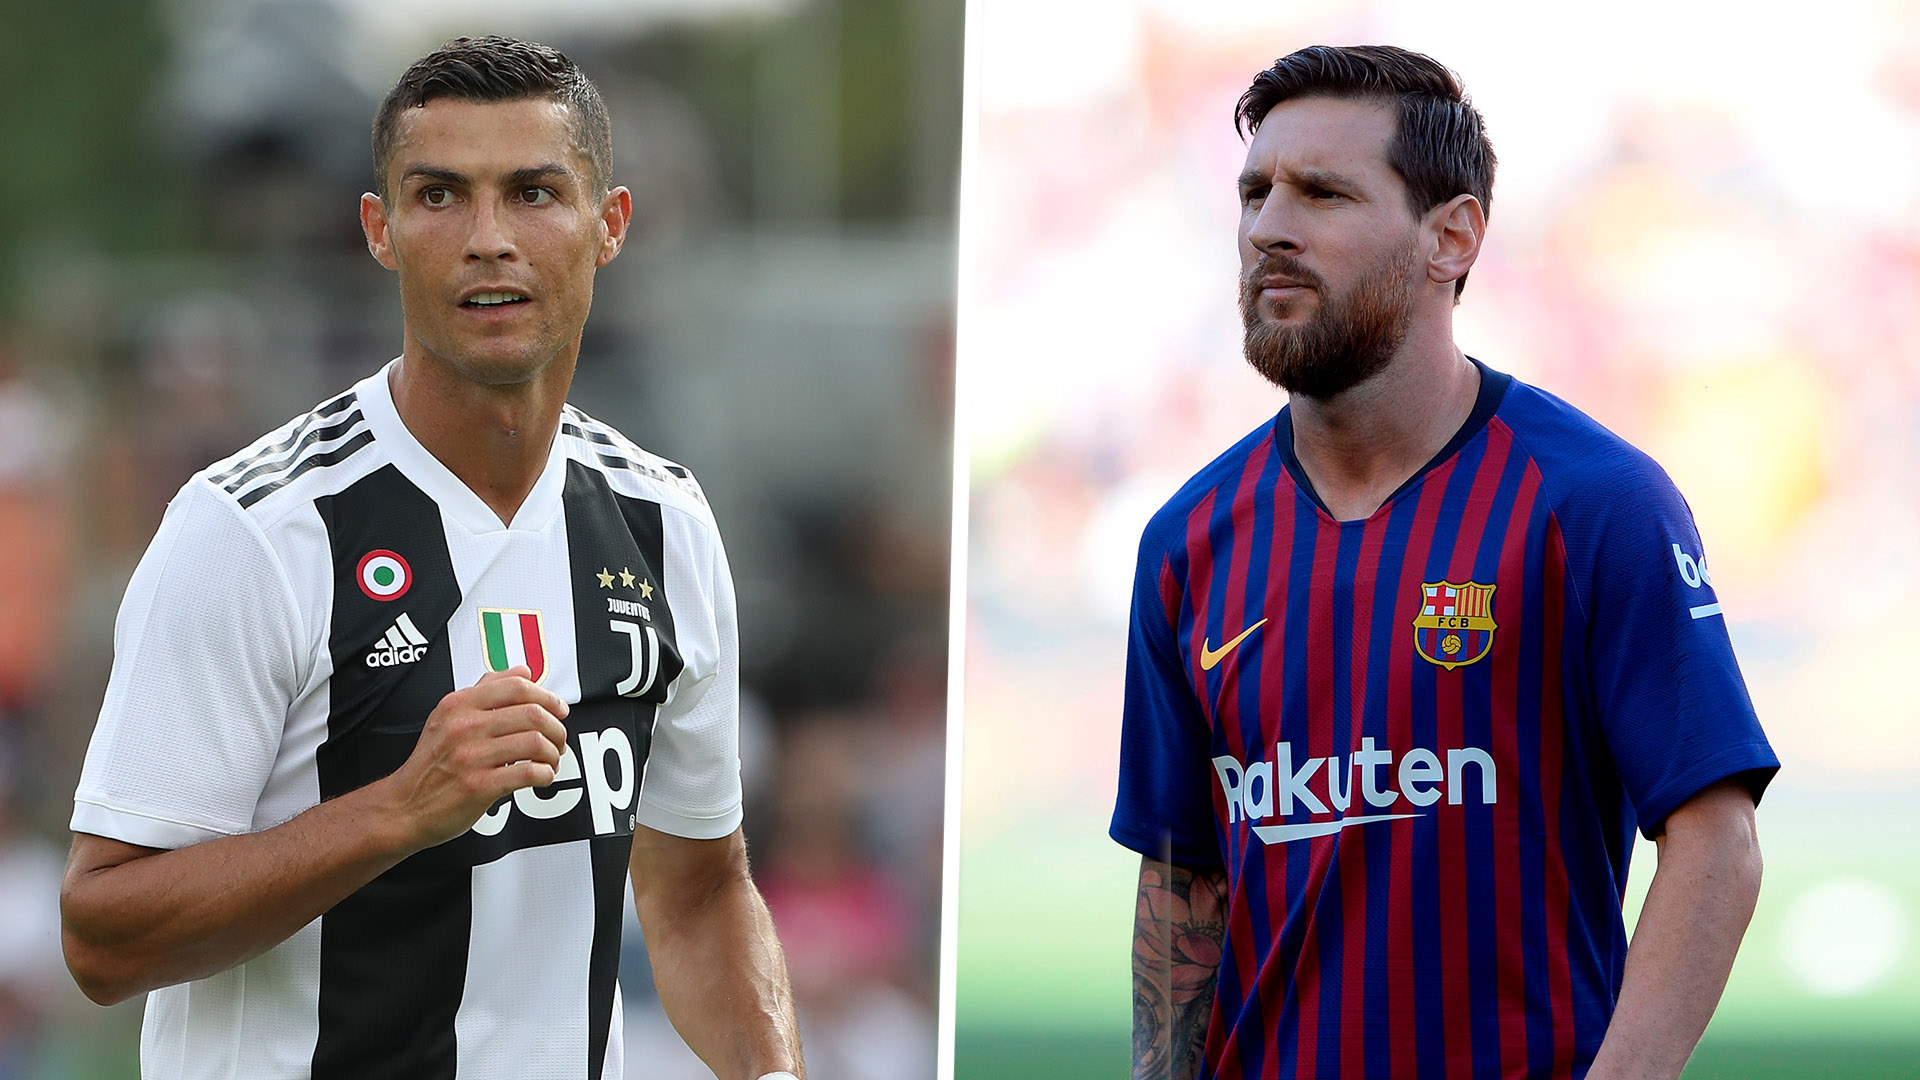 Ronaldo Beats Messi To Top Spot In FIFA 19 Rankings